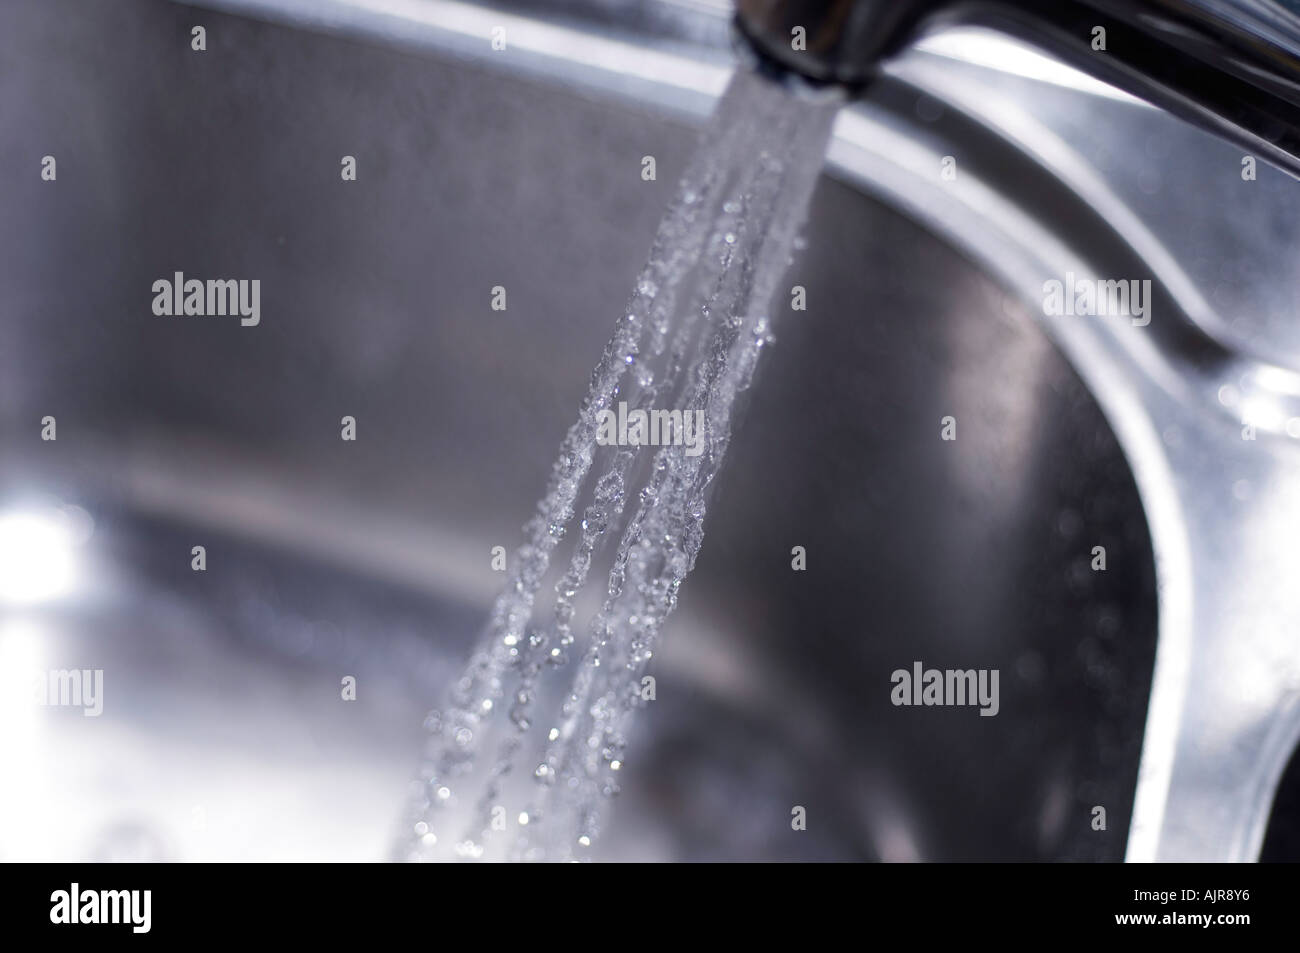 Water pouring from a kitchen tap - Stock Image